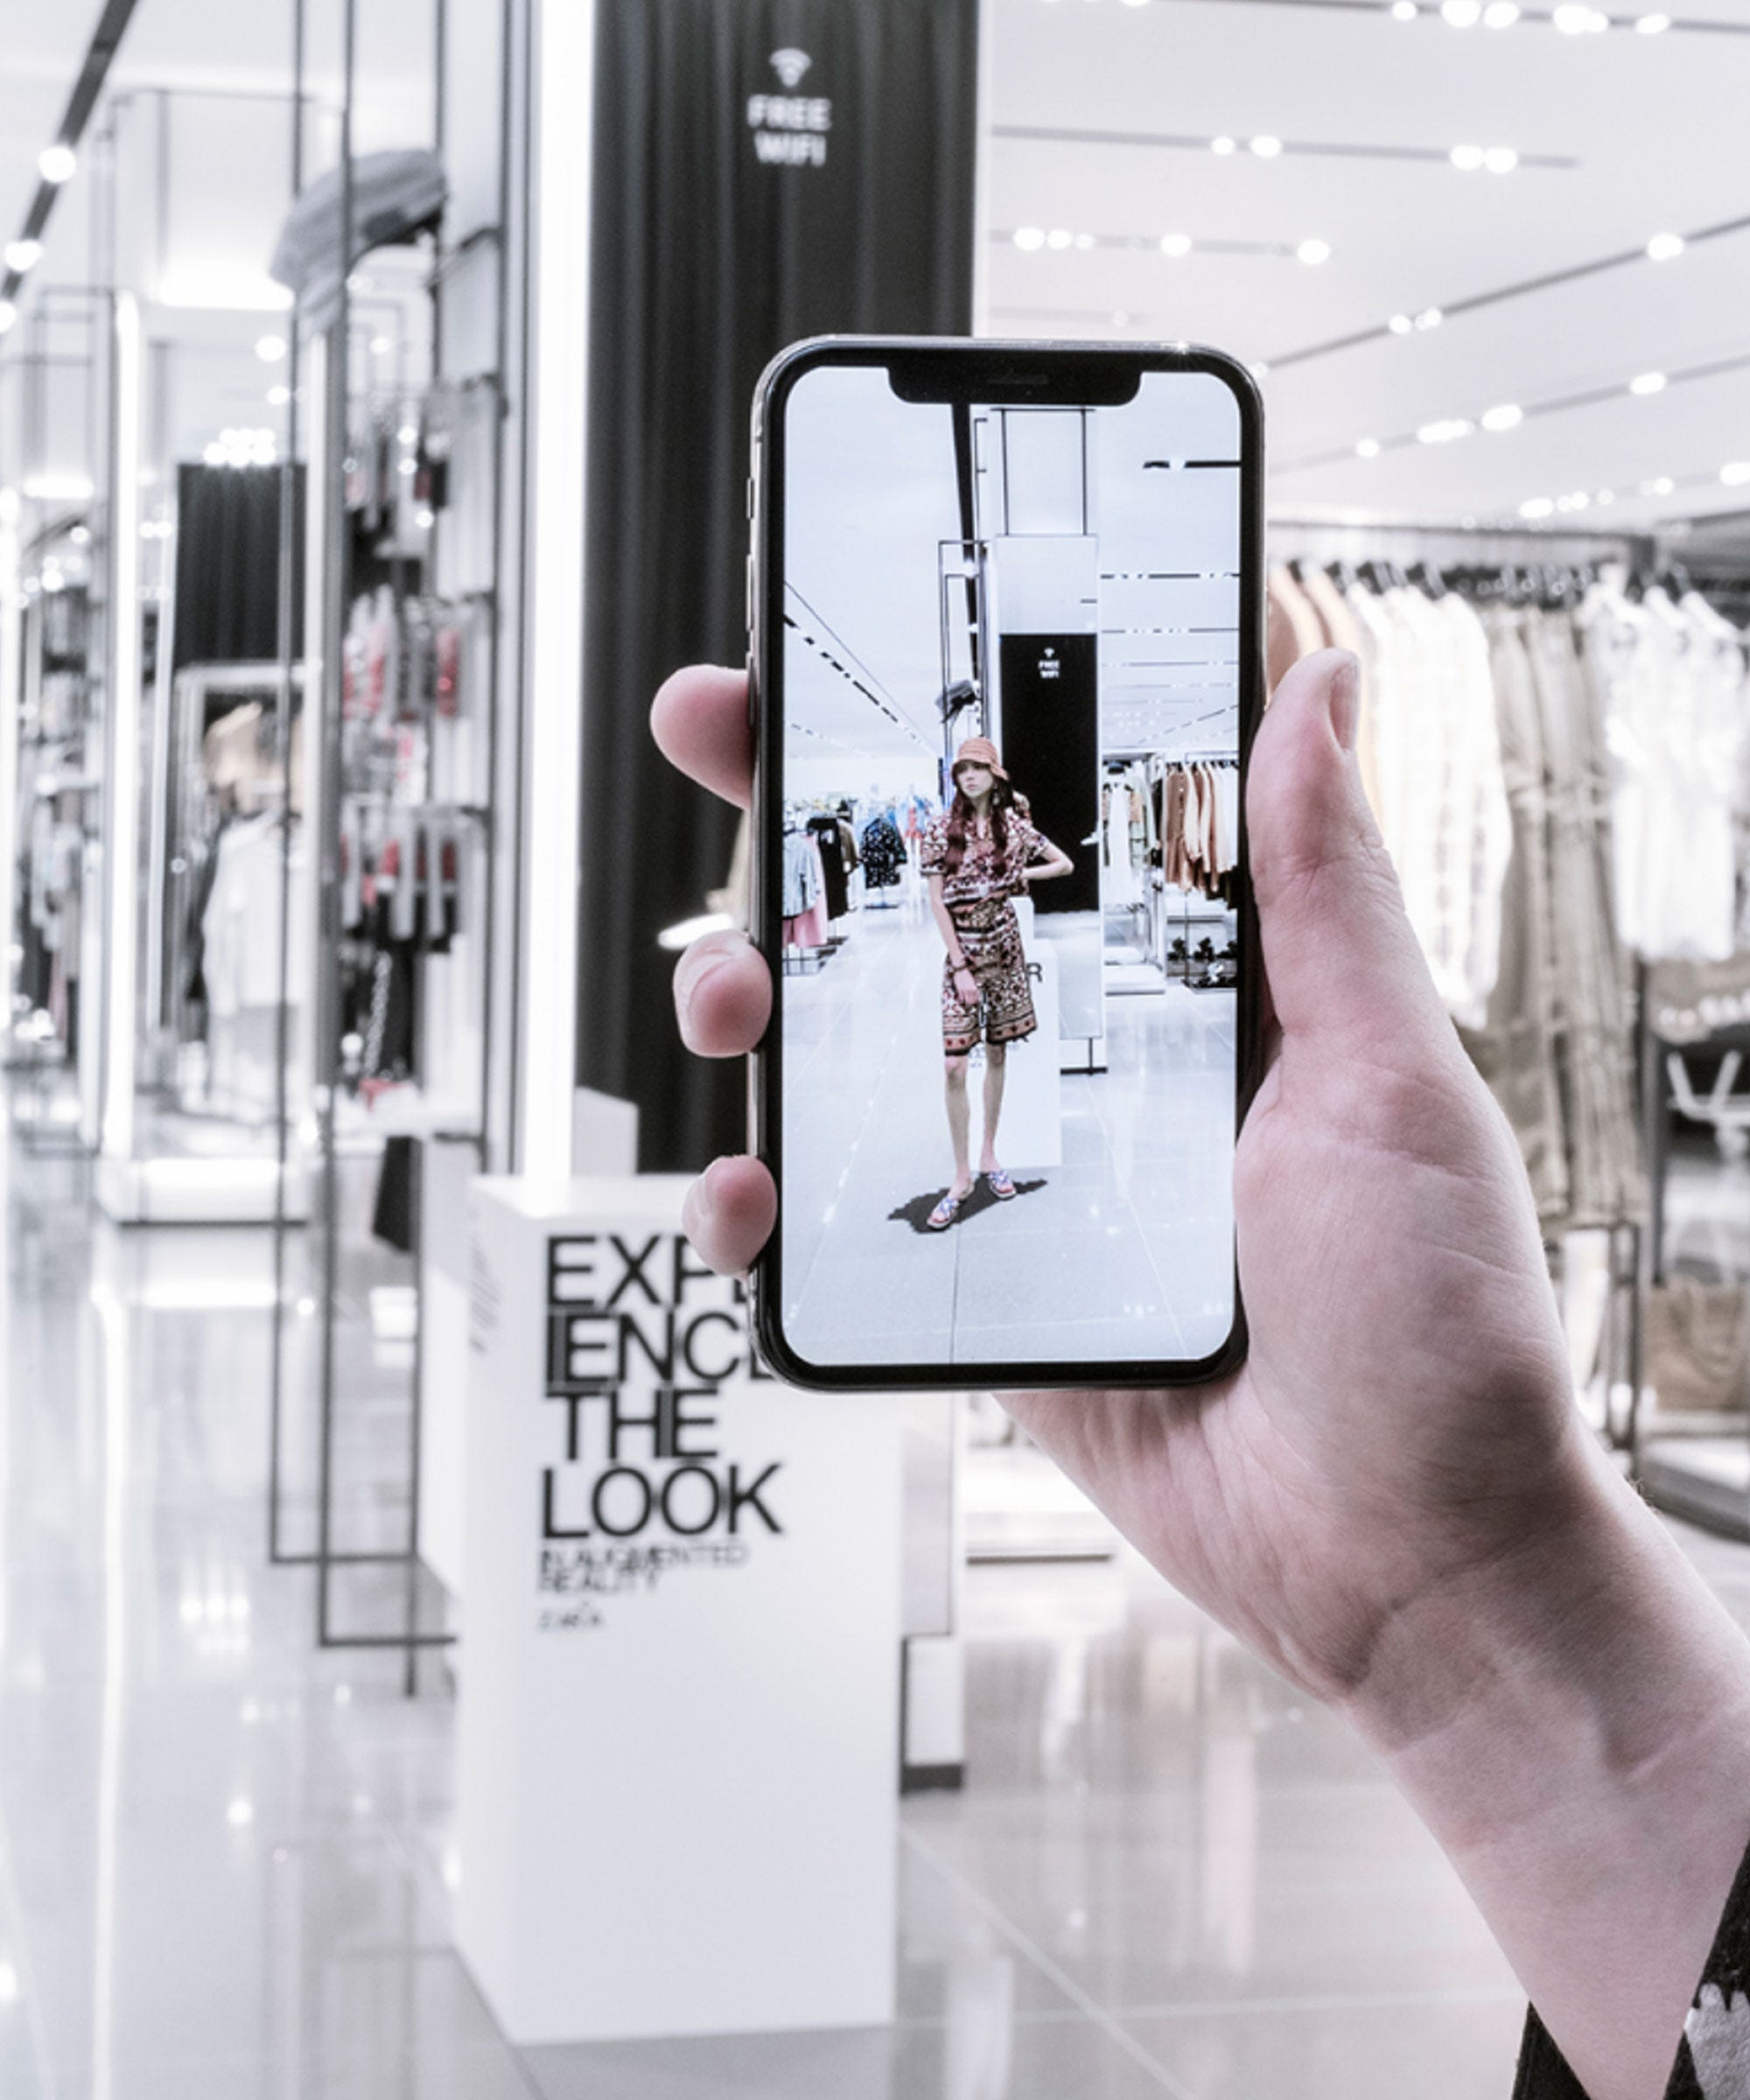 Zara Is Changing How We Shop Through Augmented Reality